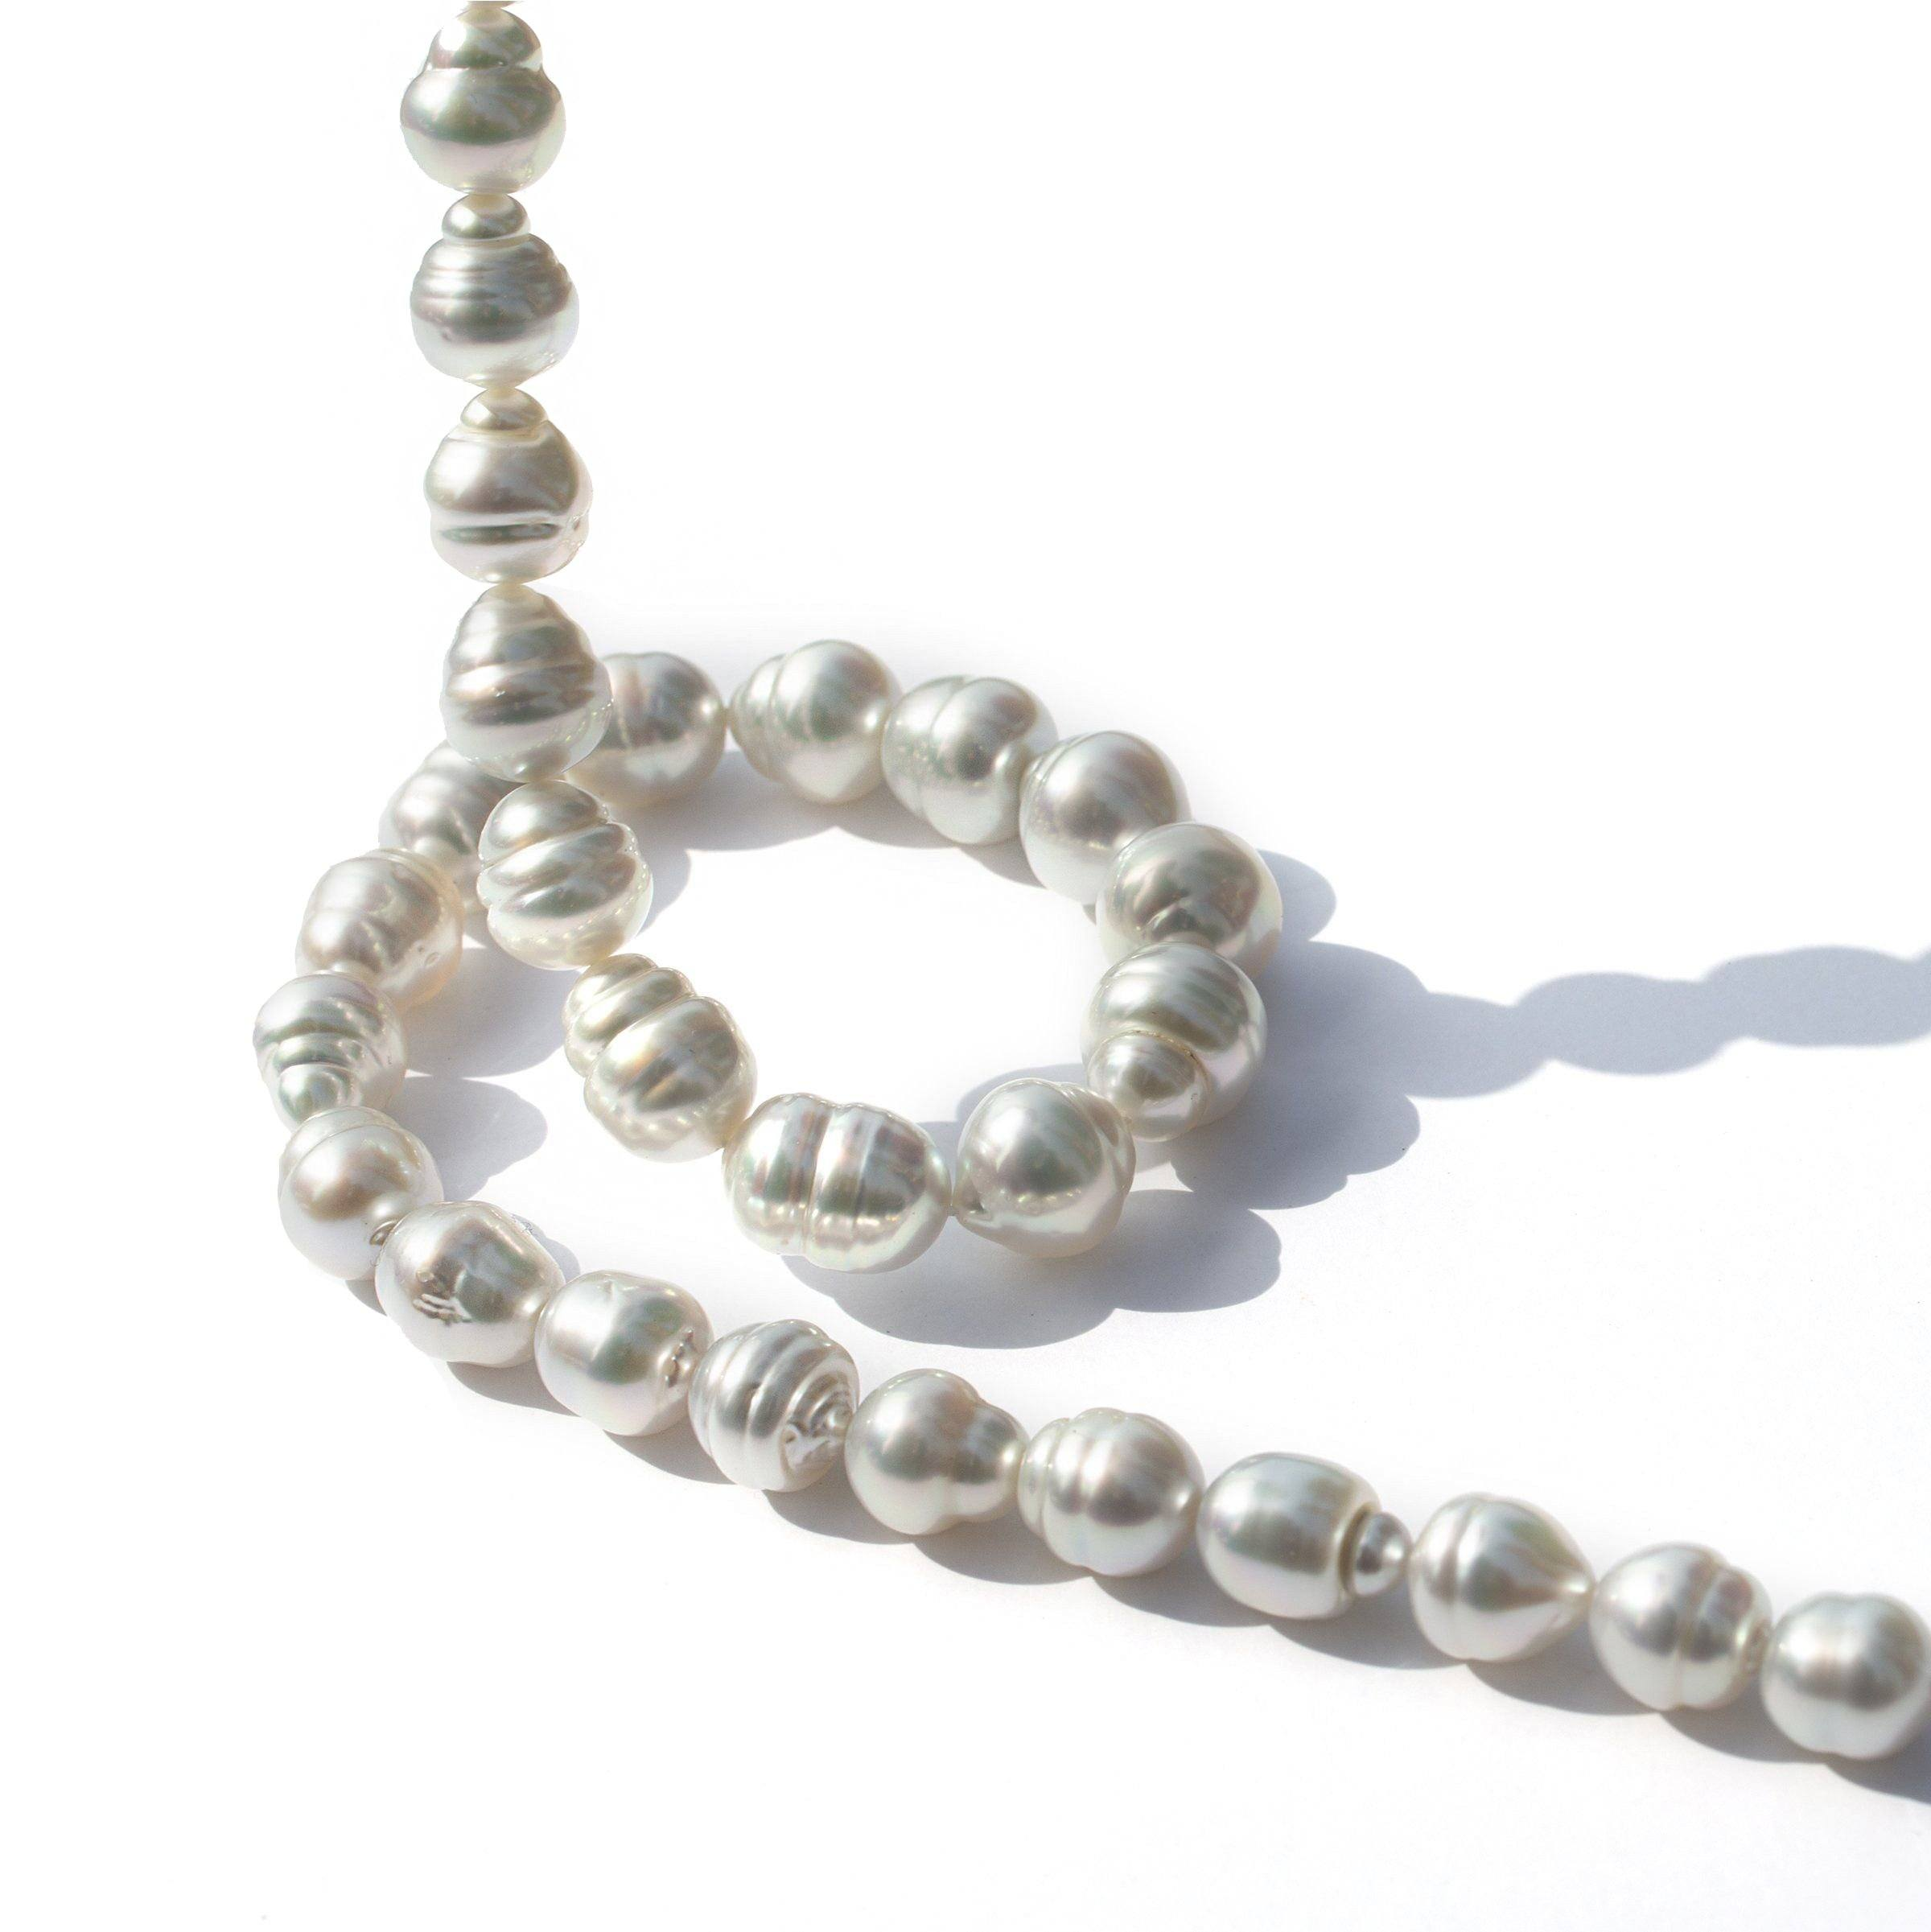 9.0-11.6 mm AA+/AAA White South Sea Baroque Necklace